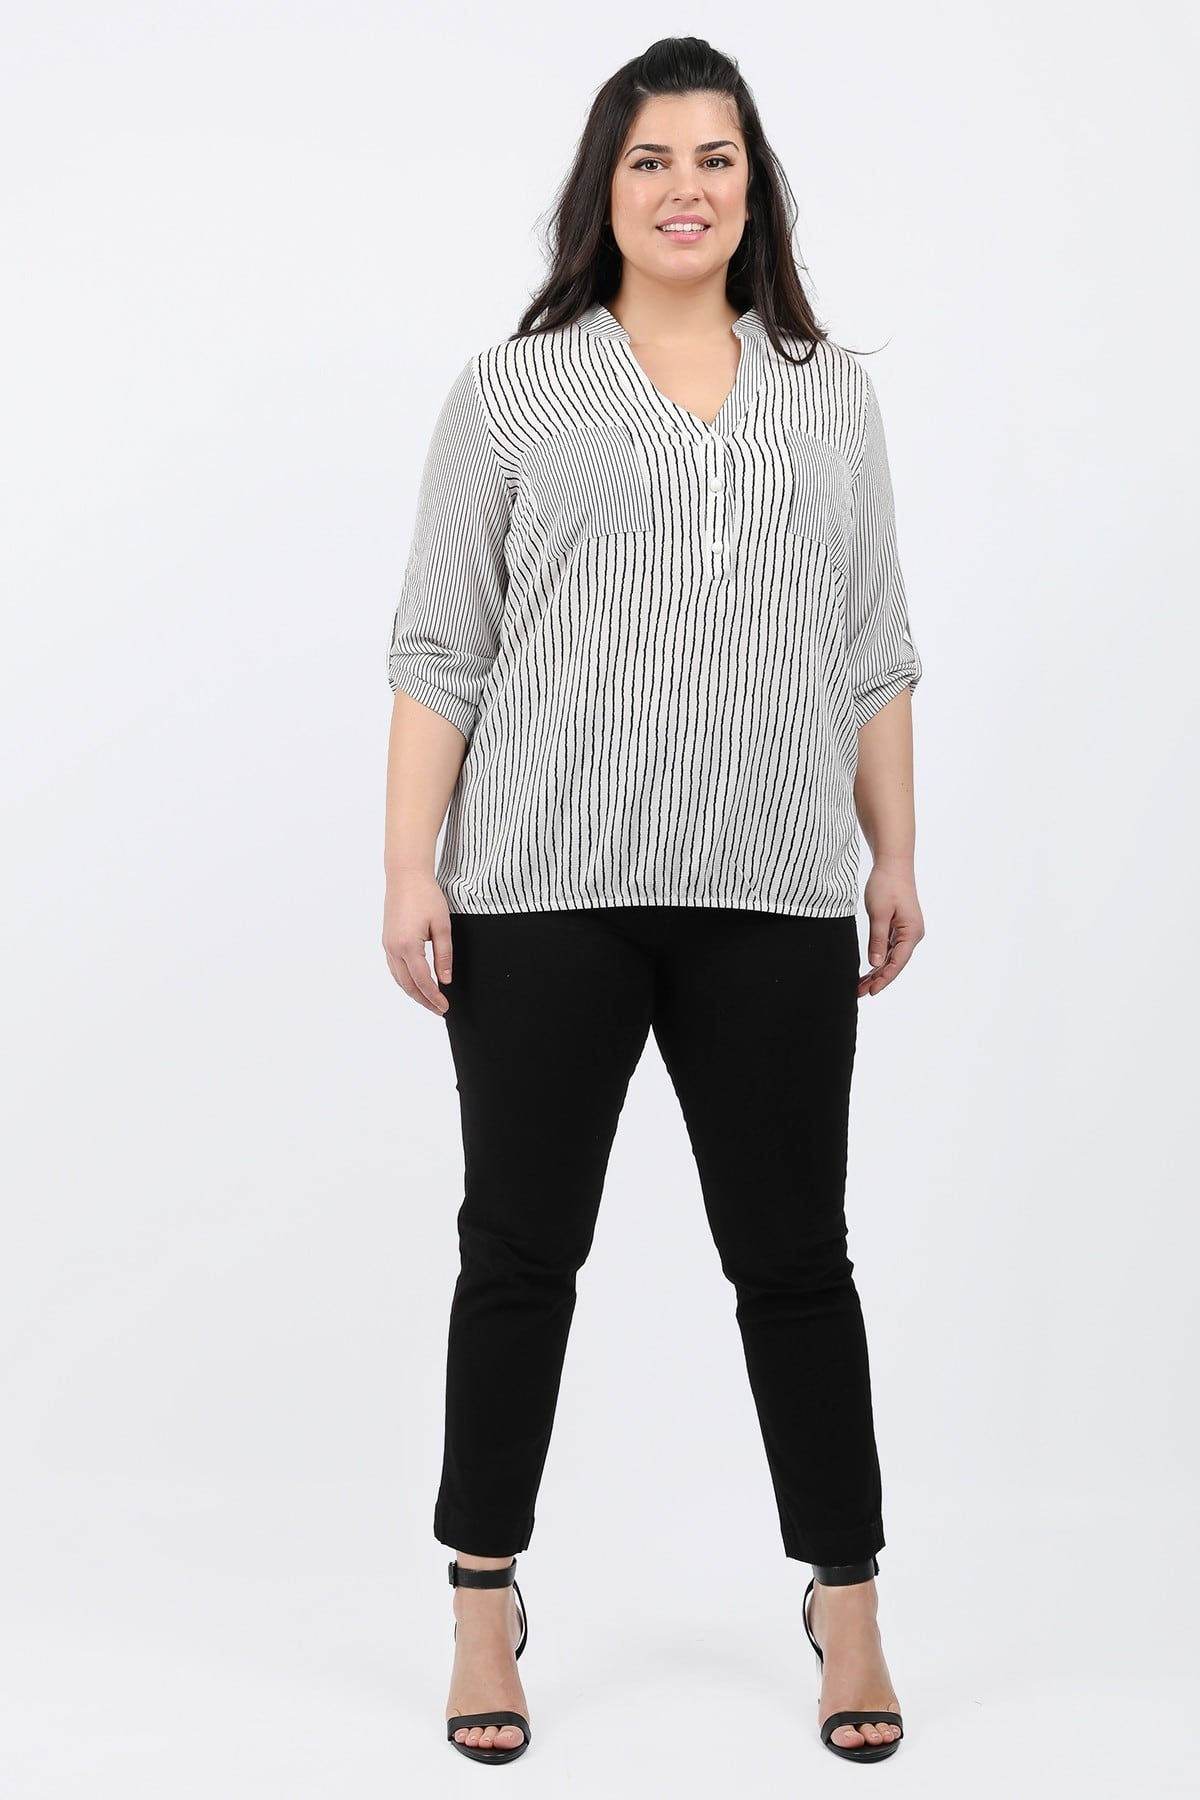 Striped shirtblouse with front pockets